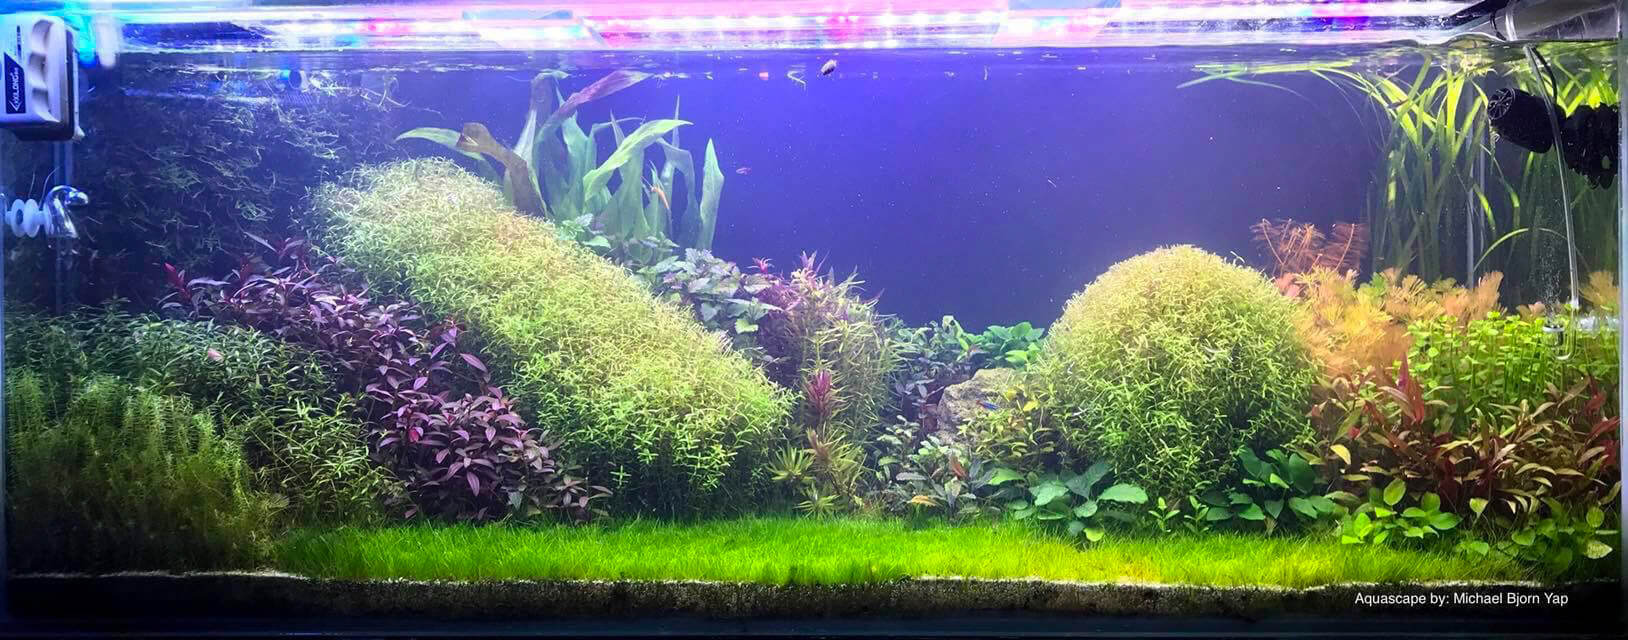 Dutch Style 150 Gallons High-Tech Aquascaped by Michael Yap Philippines